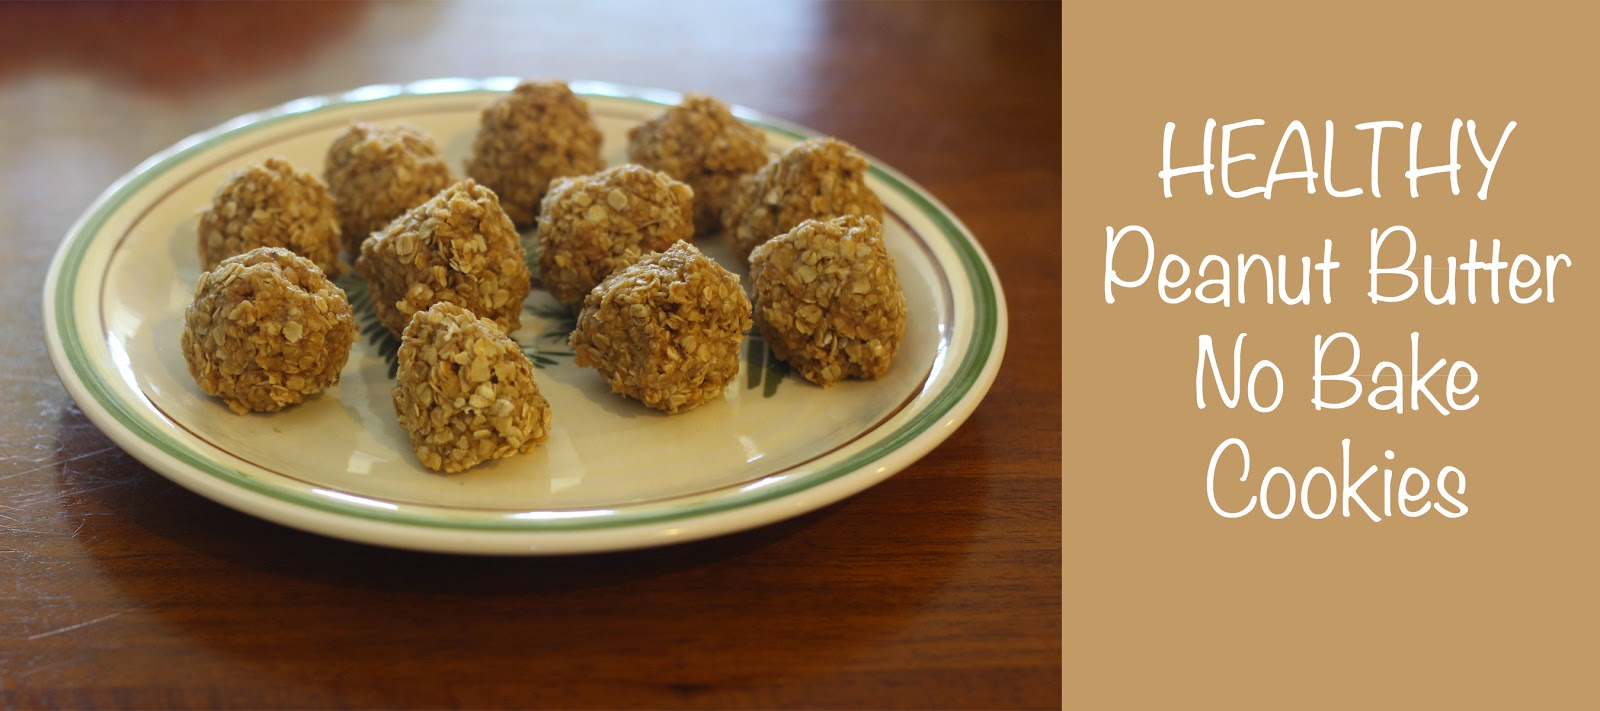 Skinny Latte Mommy: Healthy Peanut Butter No Bake Cookie Recipe